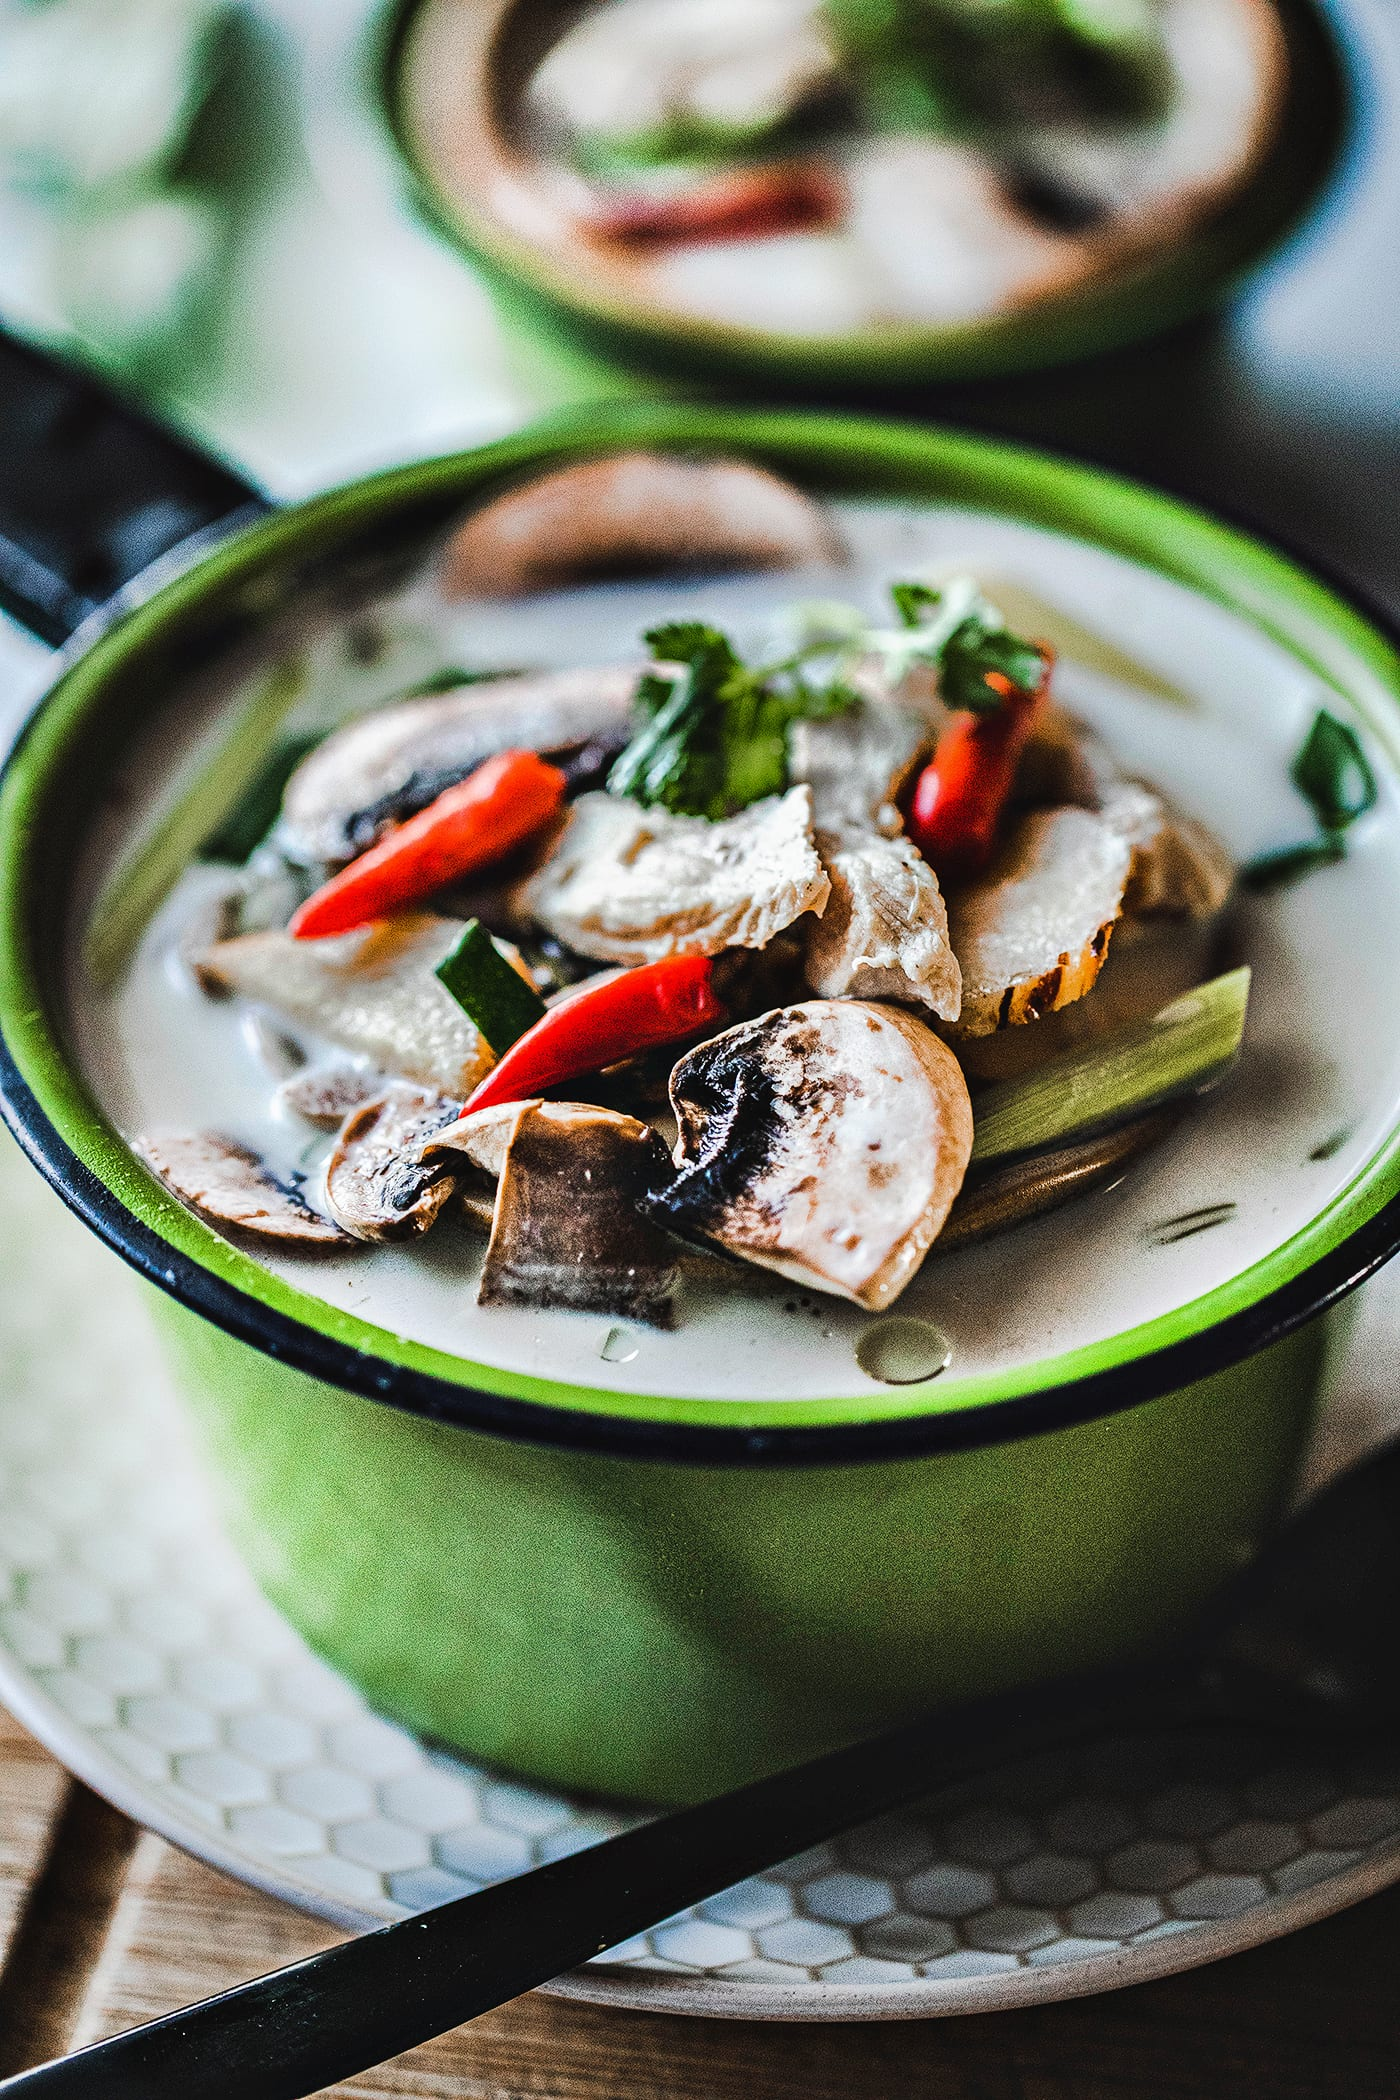 Tom Kha gai is a very well known Thai soup made by using chicken, coconut milk, herbs fish sauce, and lime juice. It is a creamy light soup that is not only delicious but also full of fresh herbs that will keep you healthy all winter long. #thaicoconutsoup #thaichickencoconutsoup #tomkhagai #thaicoconutchickensoup #easythaisoup